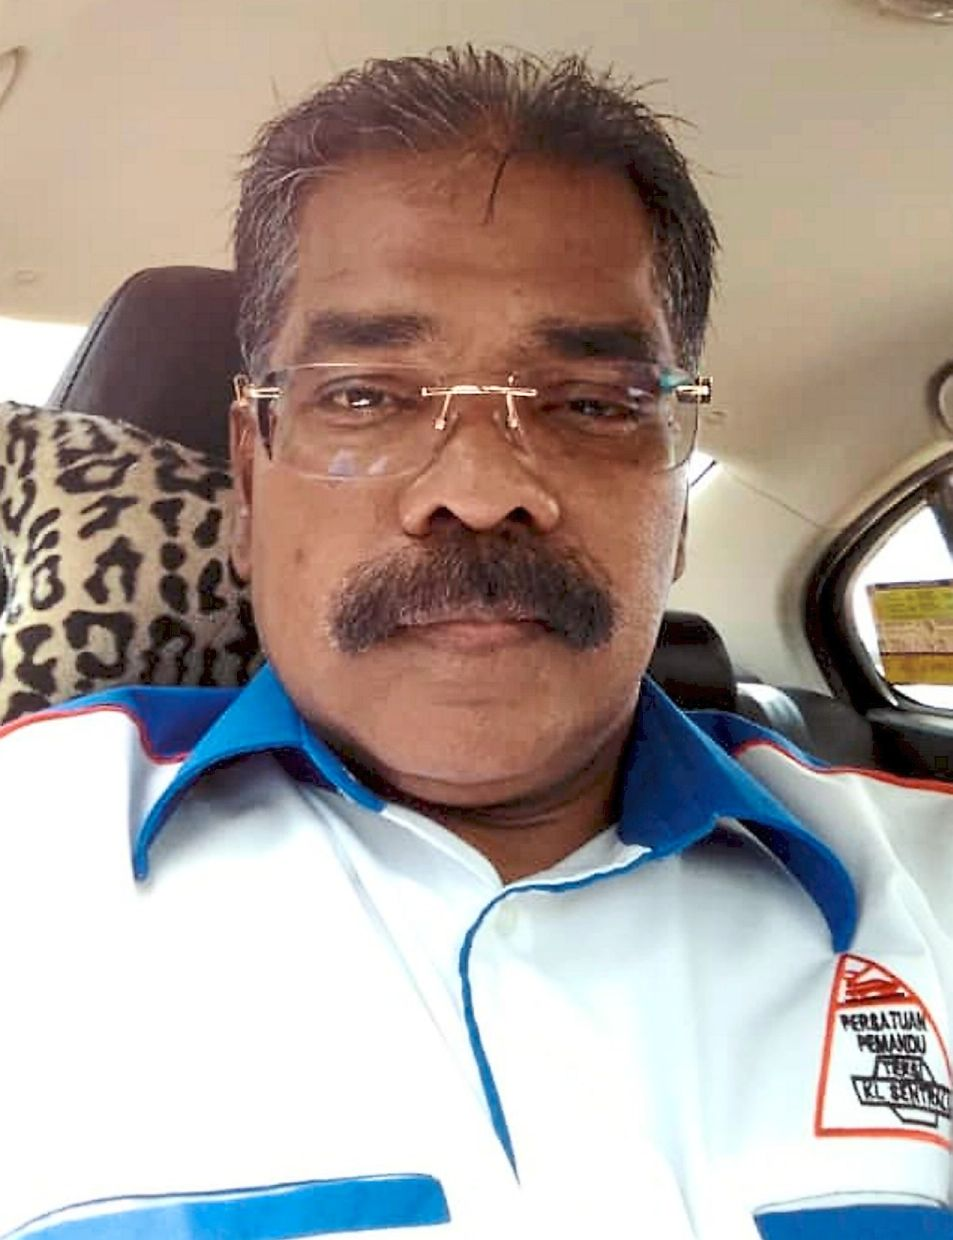 Pachymuthu soldiers on with his taxi service despite the fewer number of passengers during the MCO.